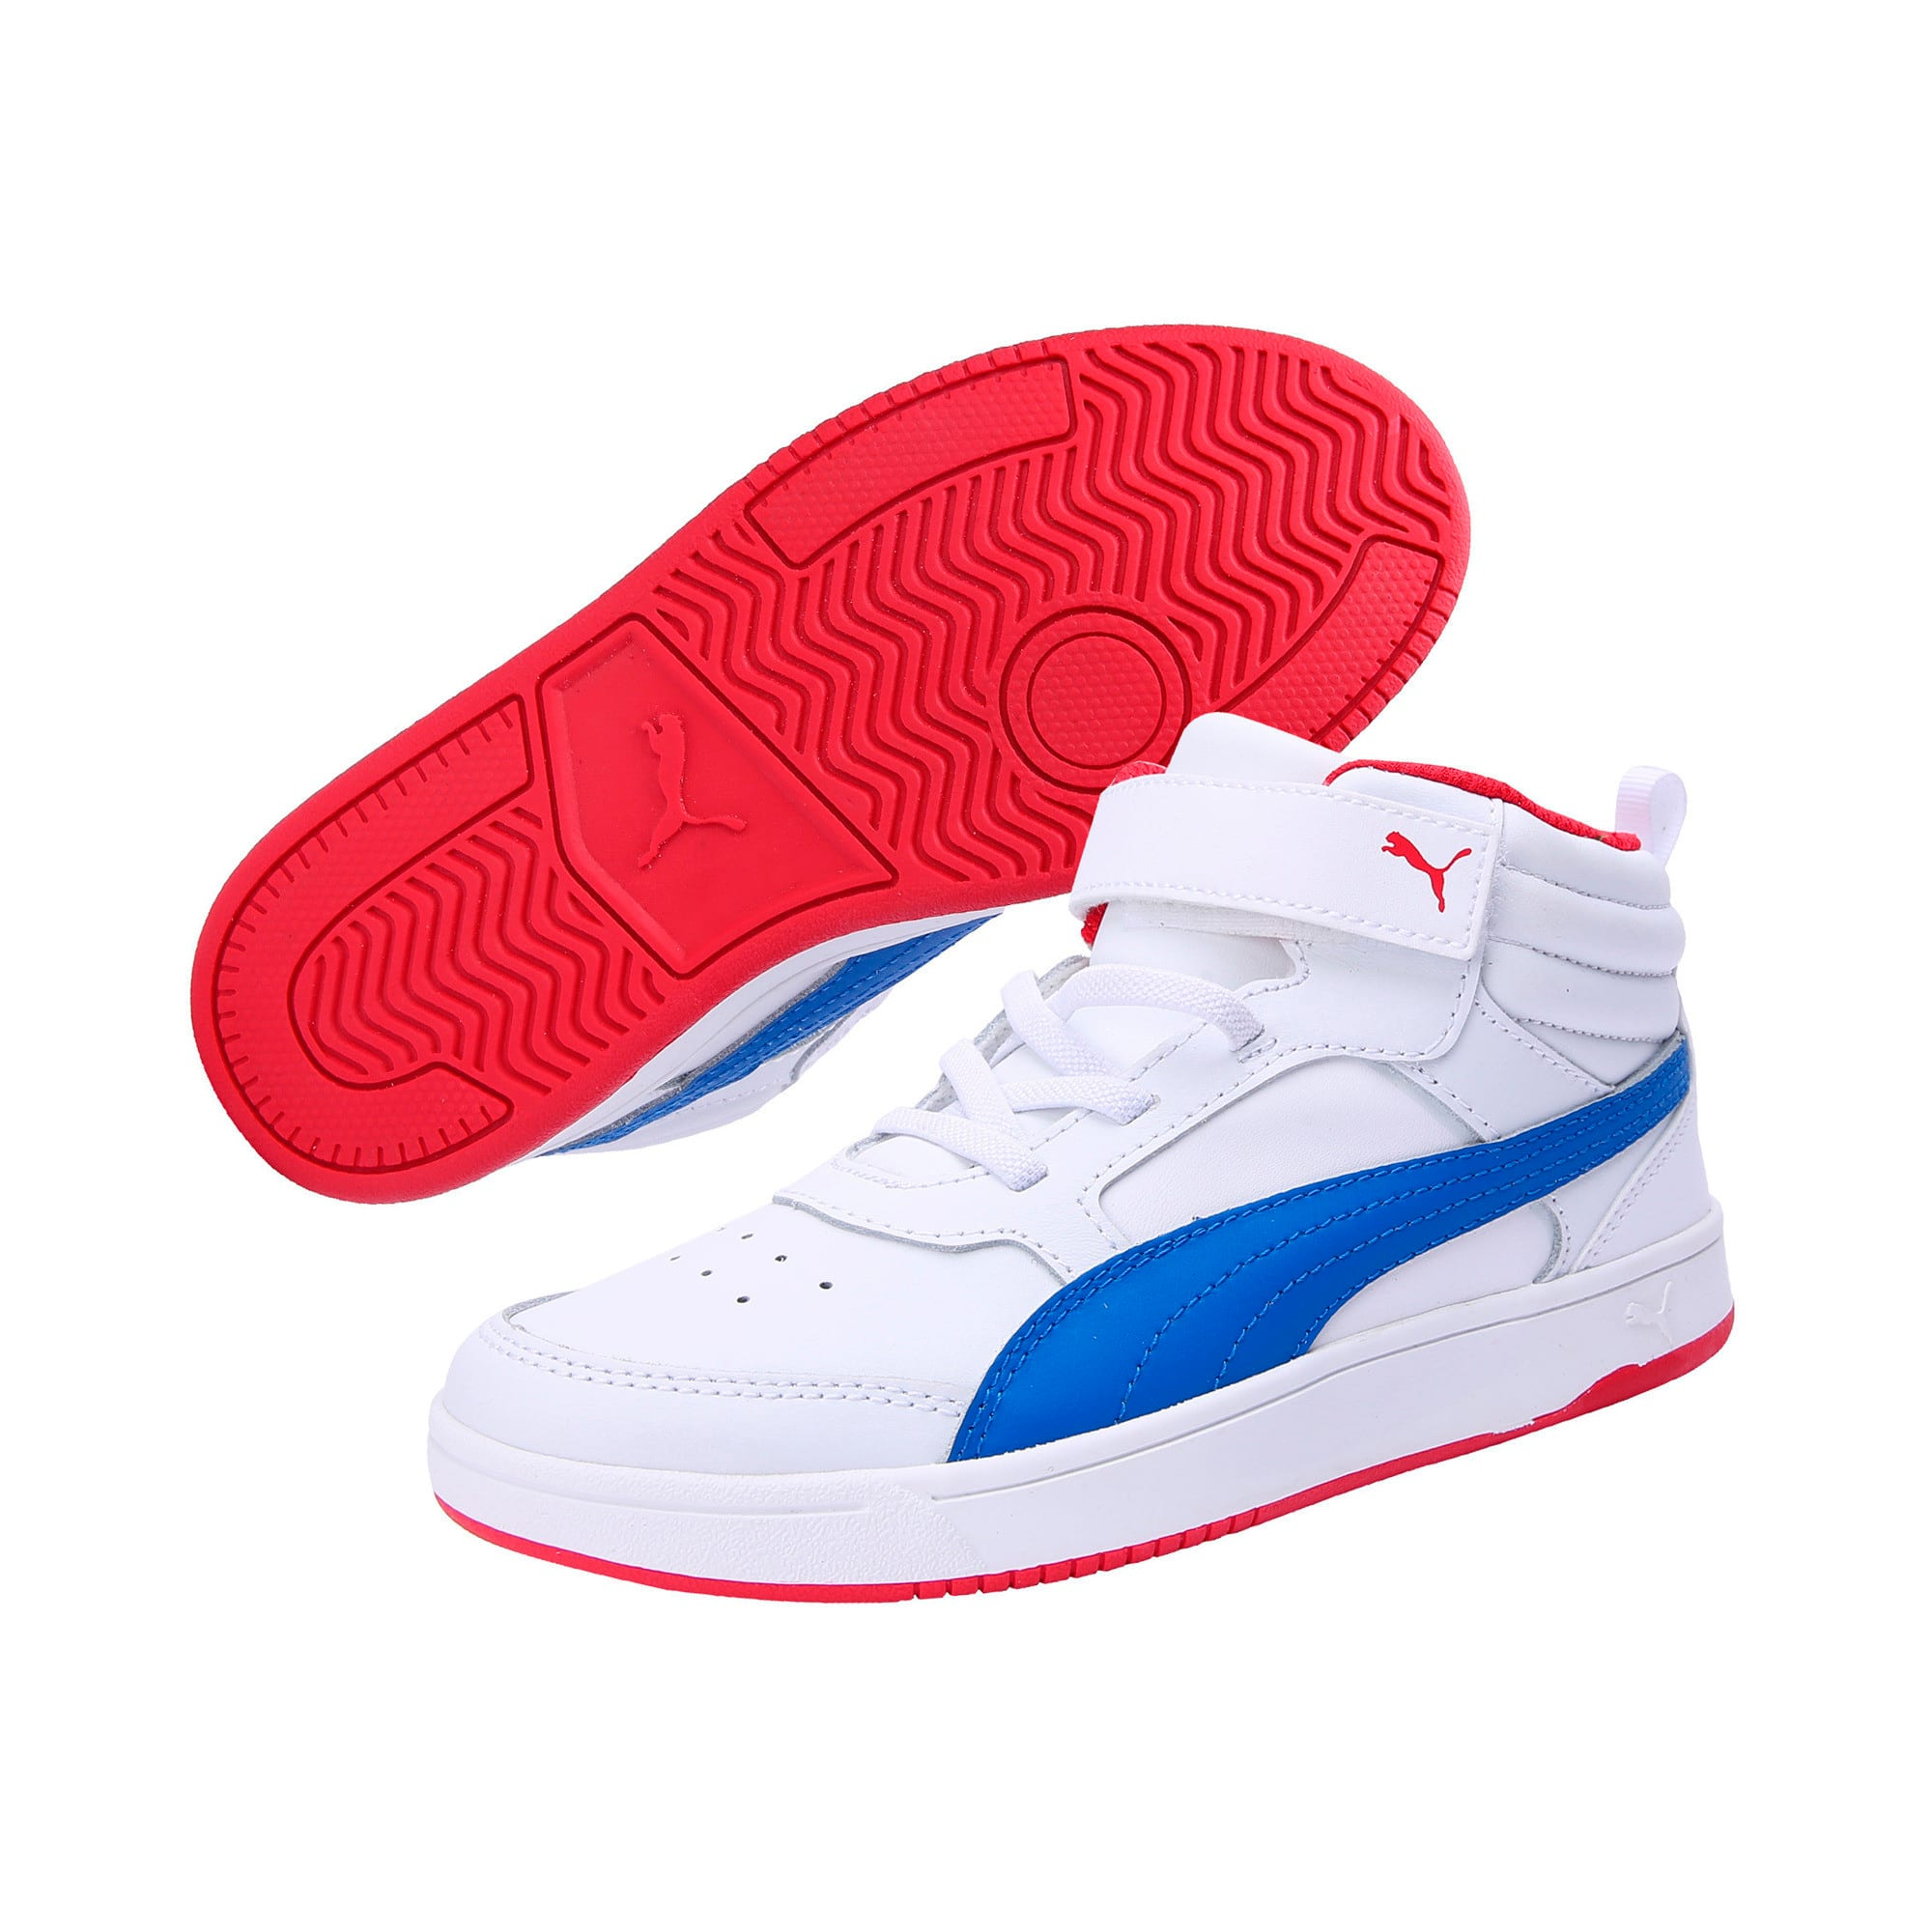 Thumbnail 2 of PumaReboundStreet2 L V PS, White-Strng Blue-Rbbn Red, medium-IND